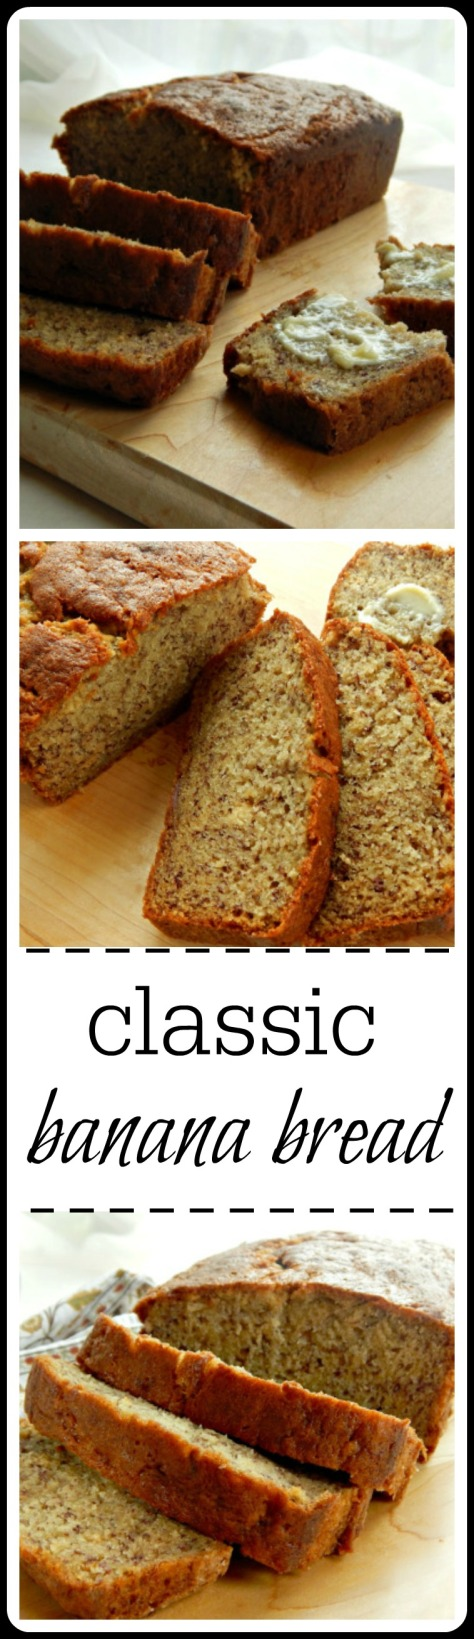 This is the banana bread recipe you want! I've been making it for over 50 years and haven't found a better one!